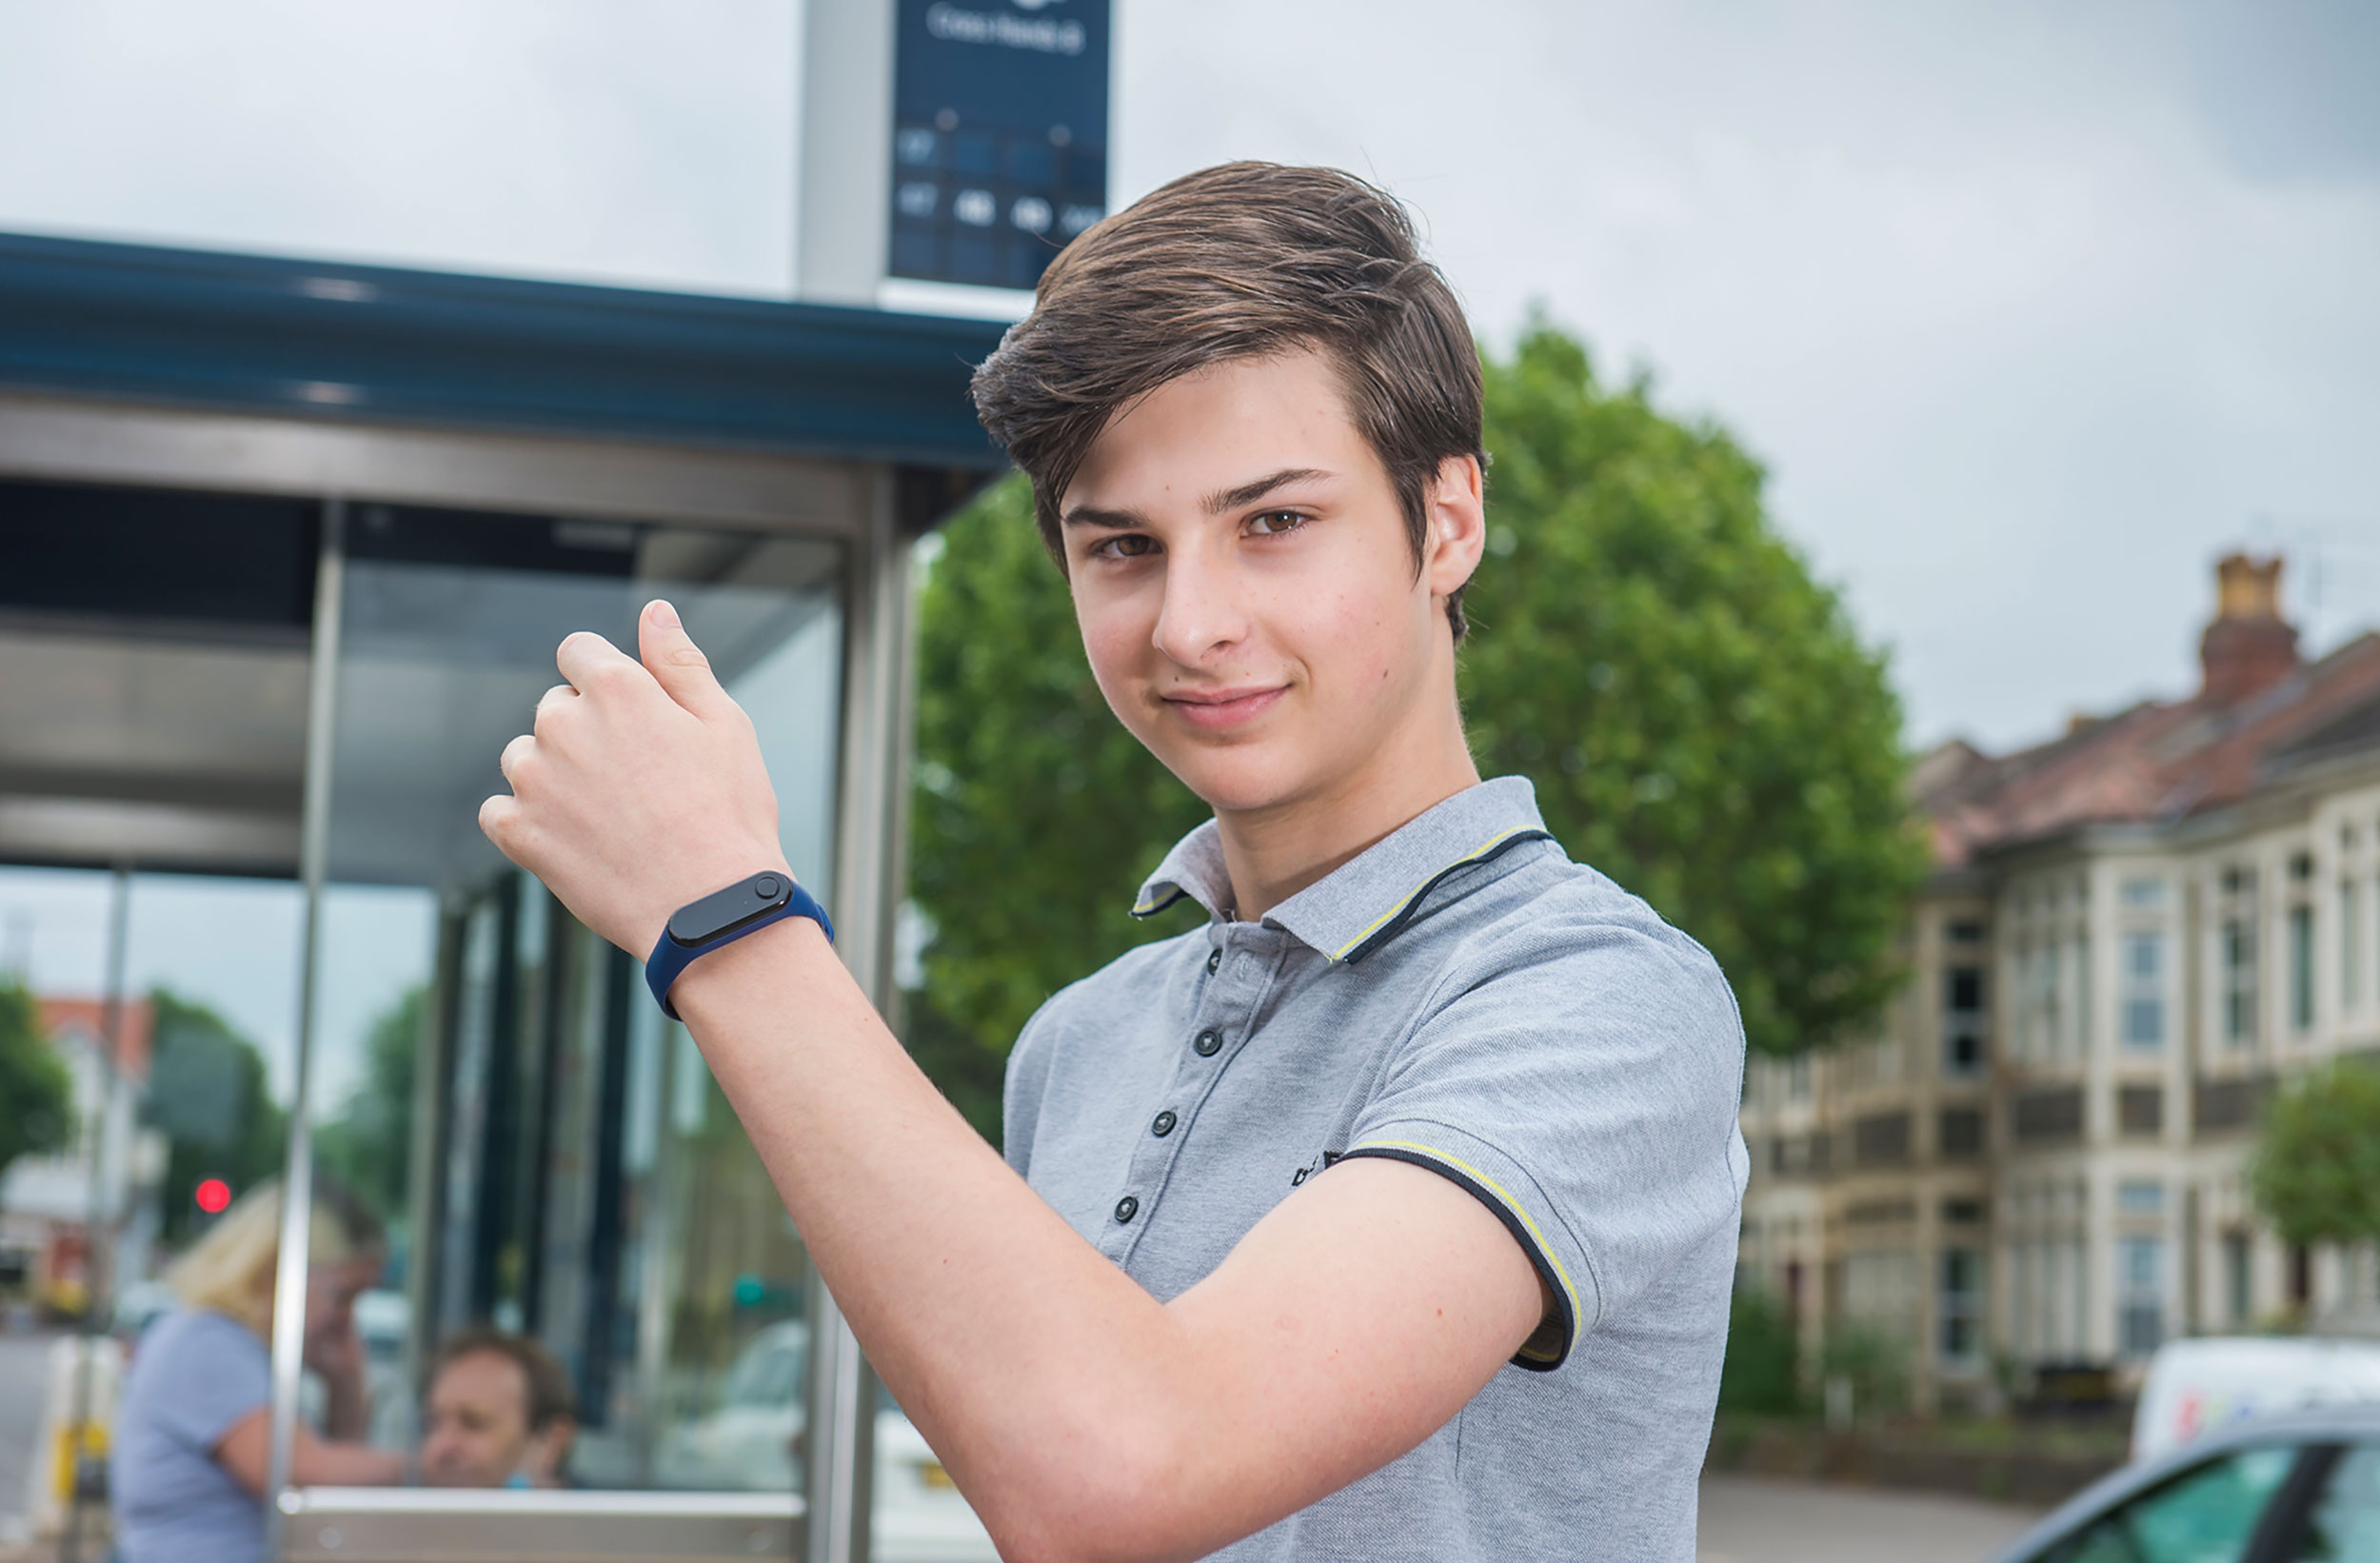 Max Melia, 15, wearing his Vybpro watch.